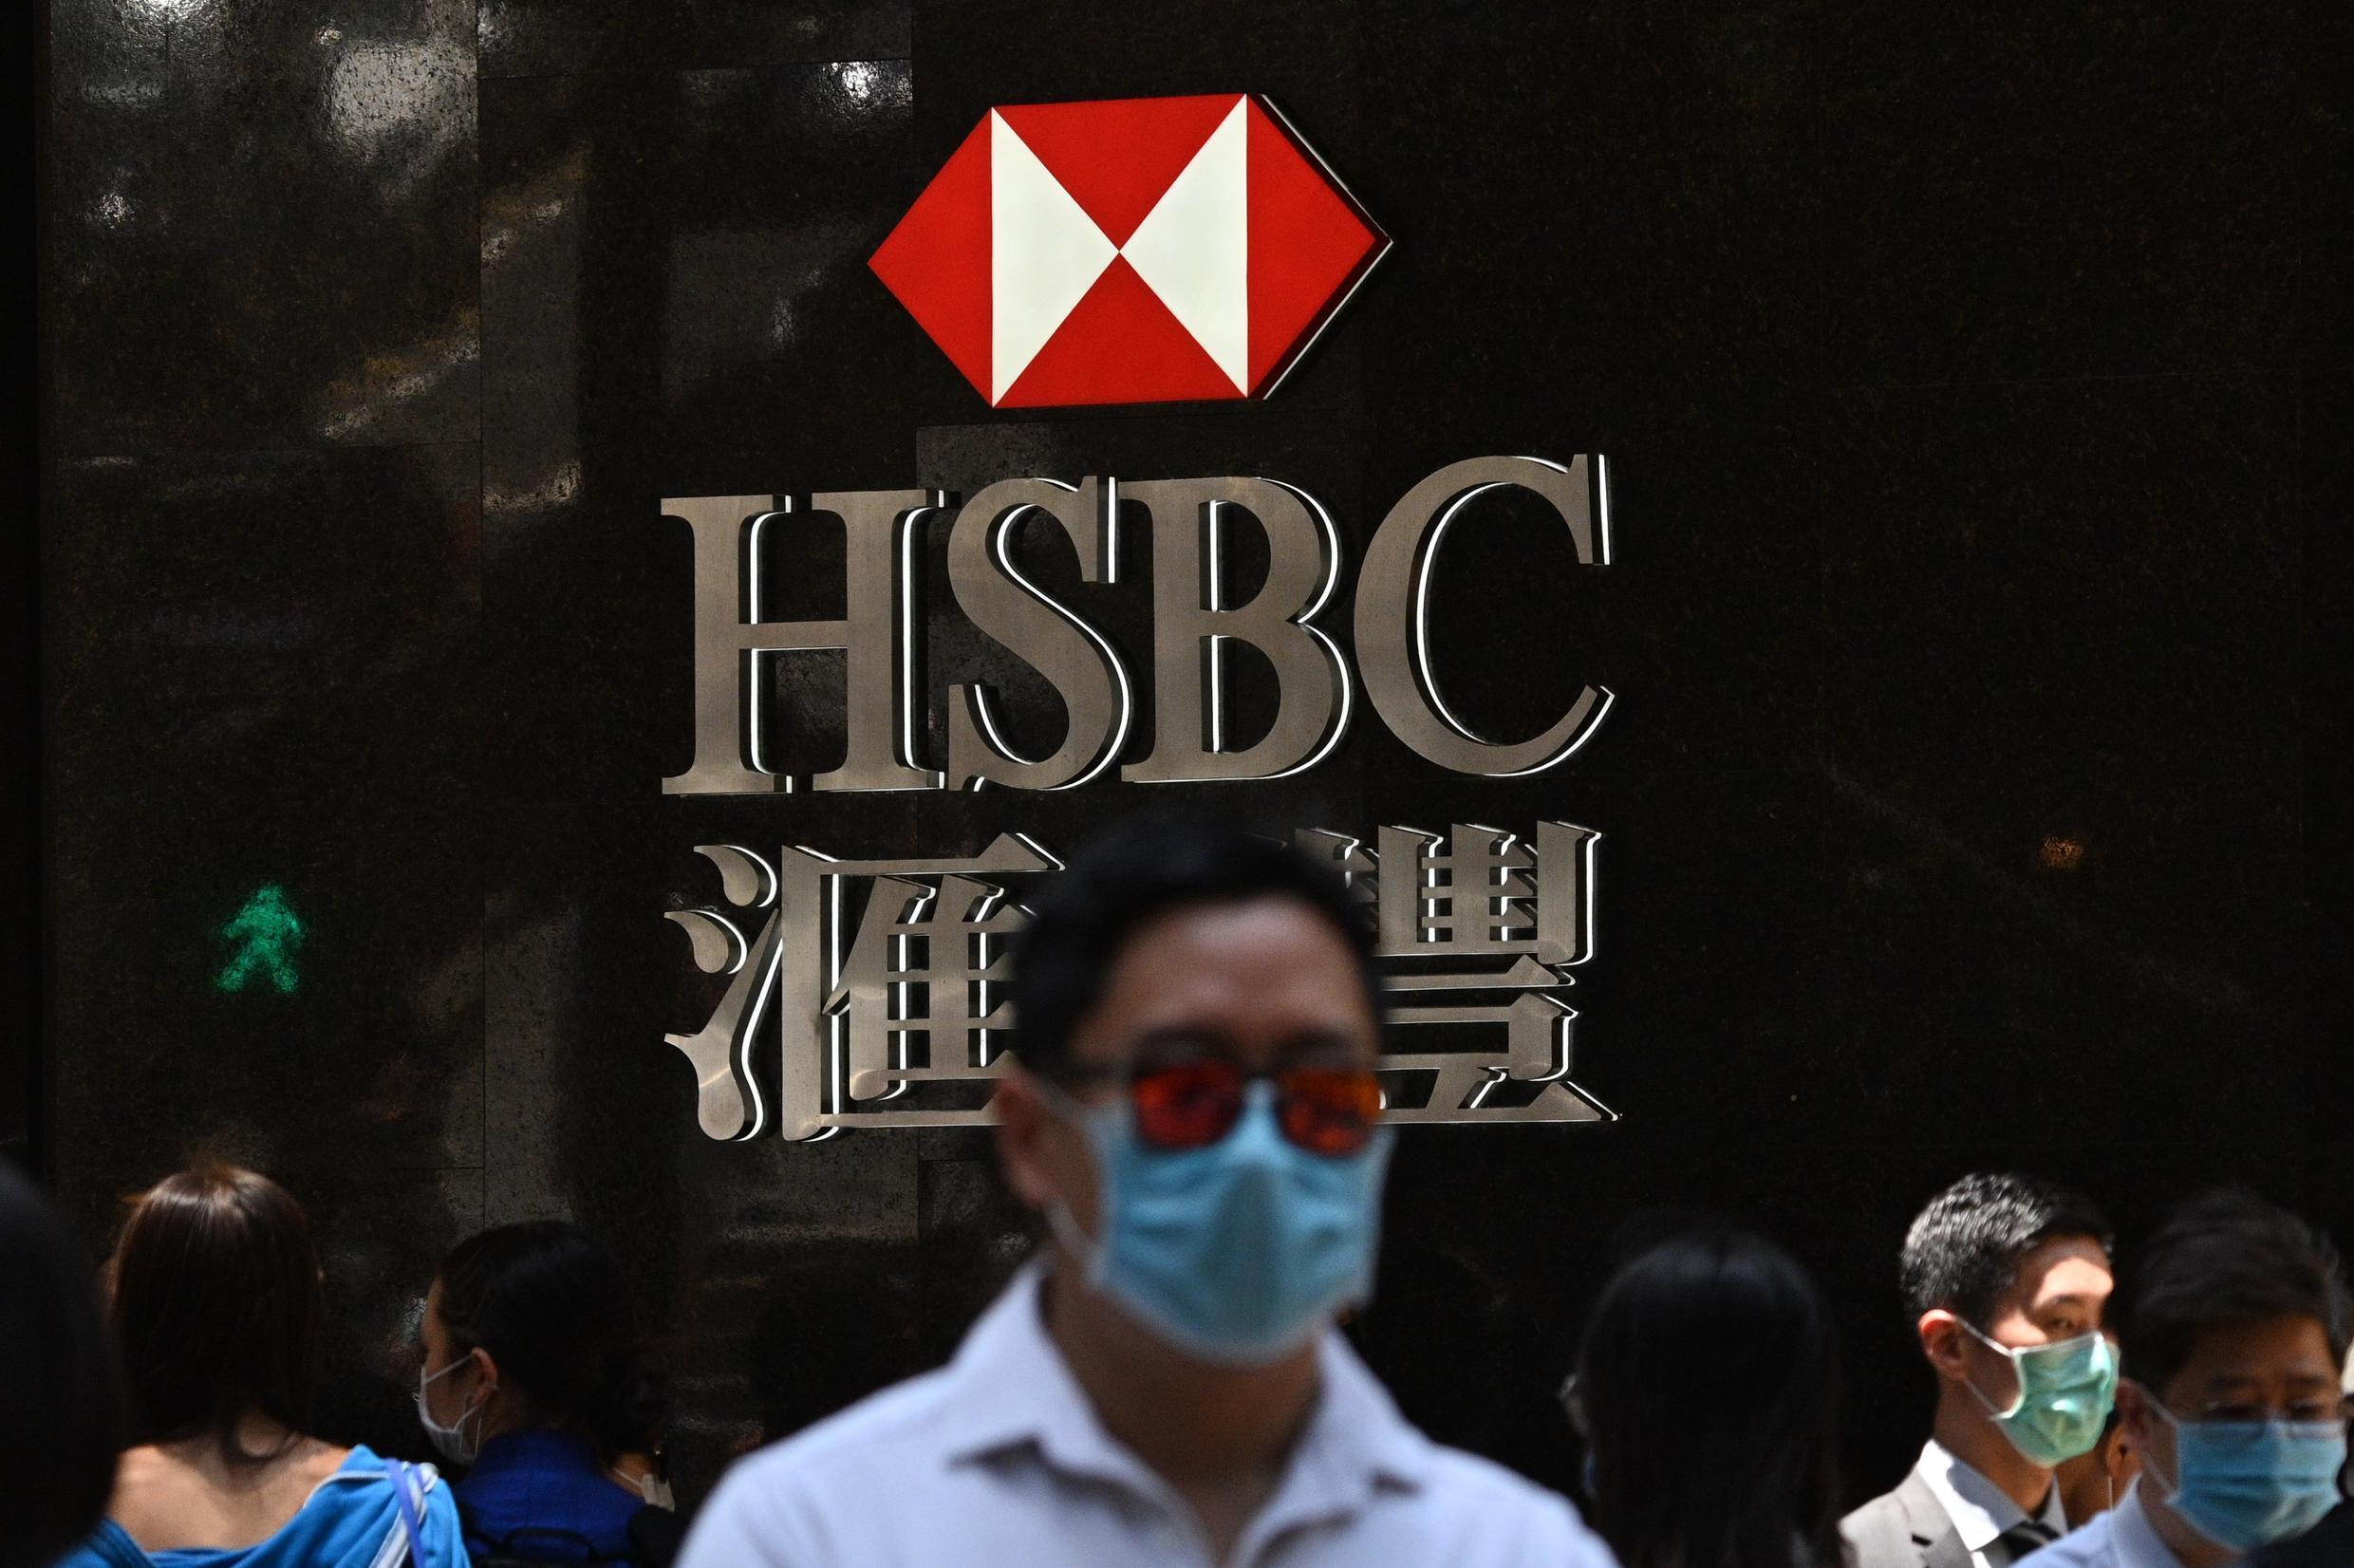 British banks HSBC and Standard Chartered have publicly supported China's national security law proposal for Hong Kong